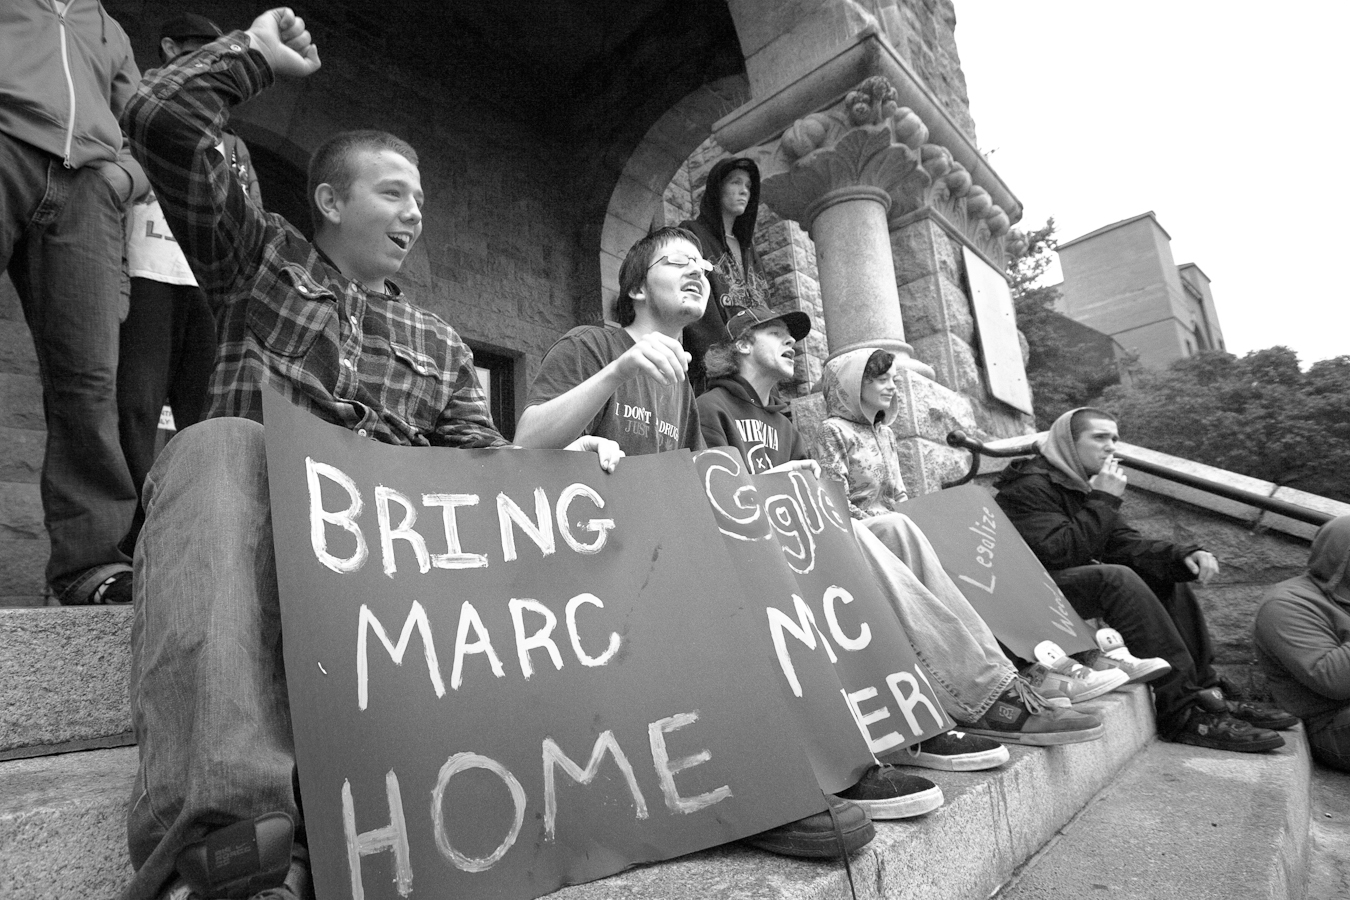 A group protests the inprisonment of Marc Emery - Courthouse Steps - Water Street